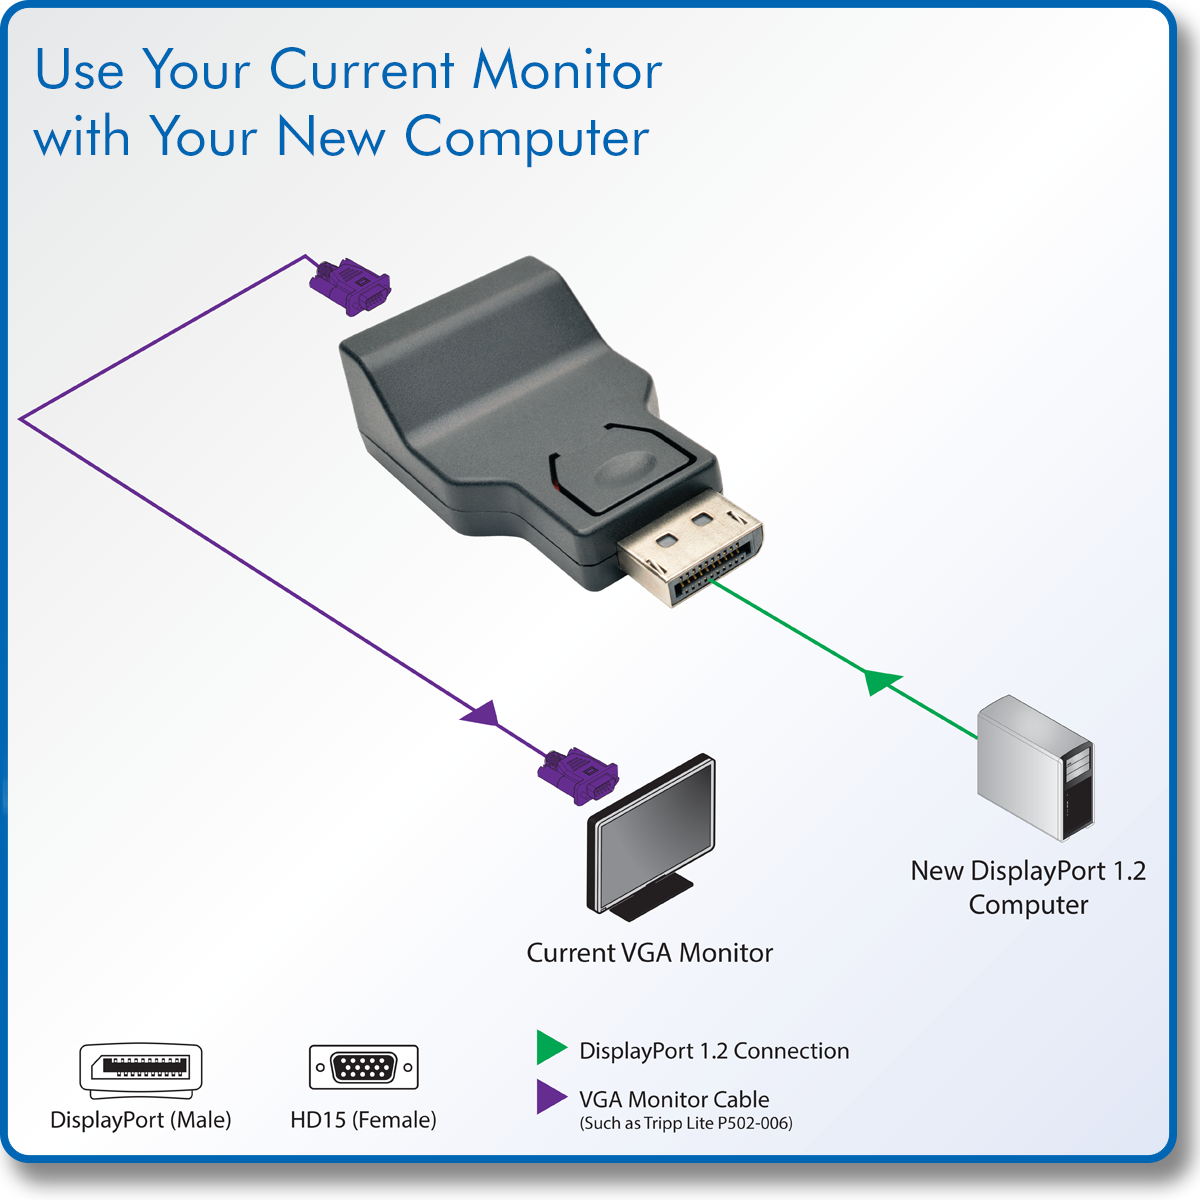 Connect a VGA Monitor to a DisplayPort 1.2 Computer